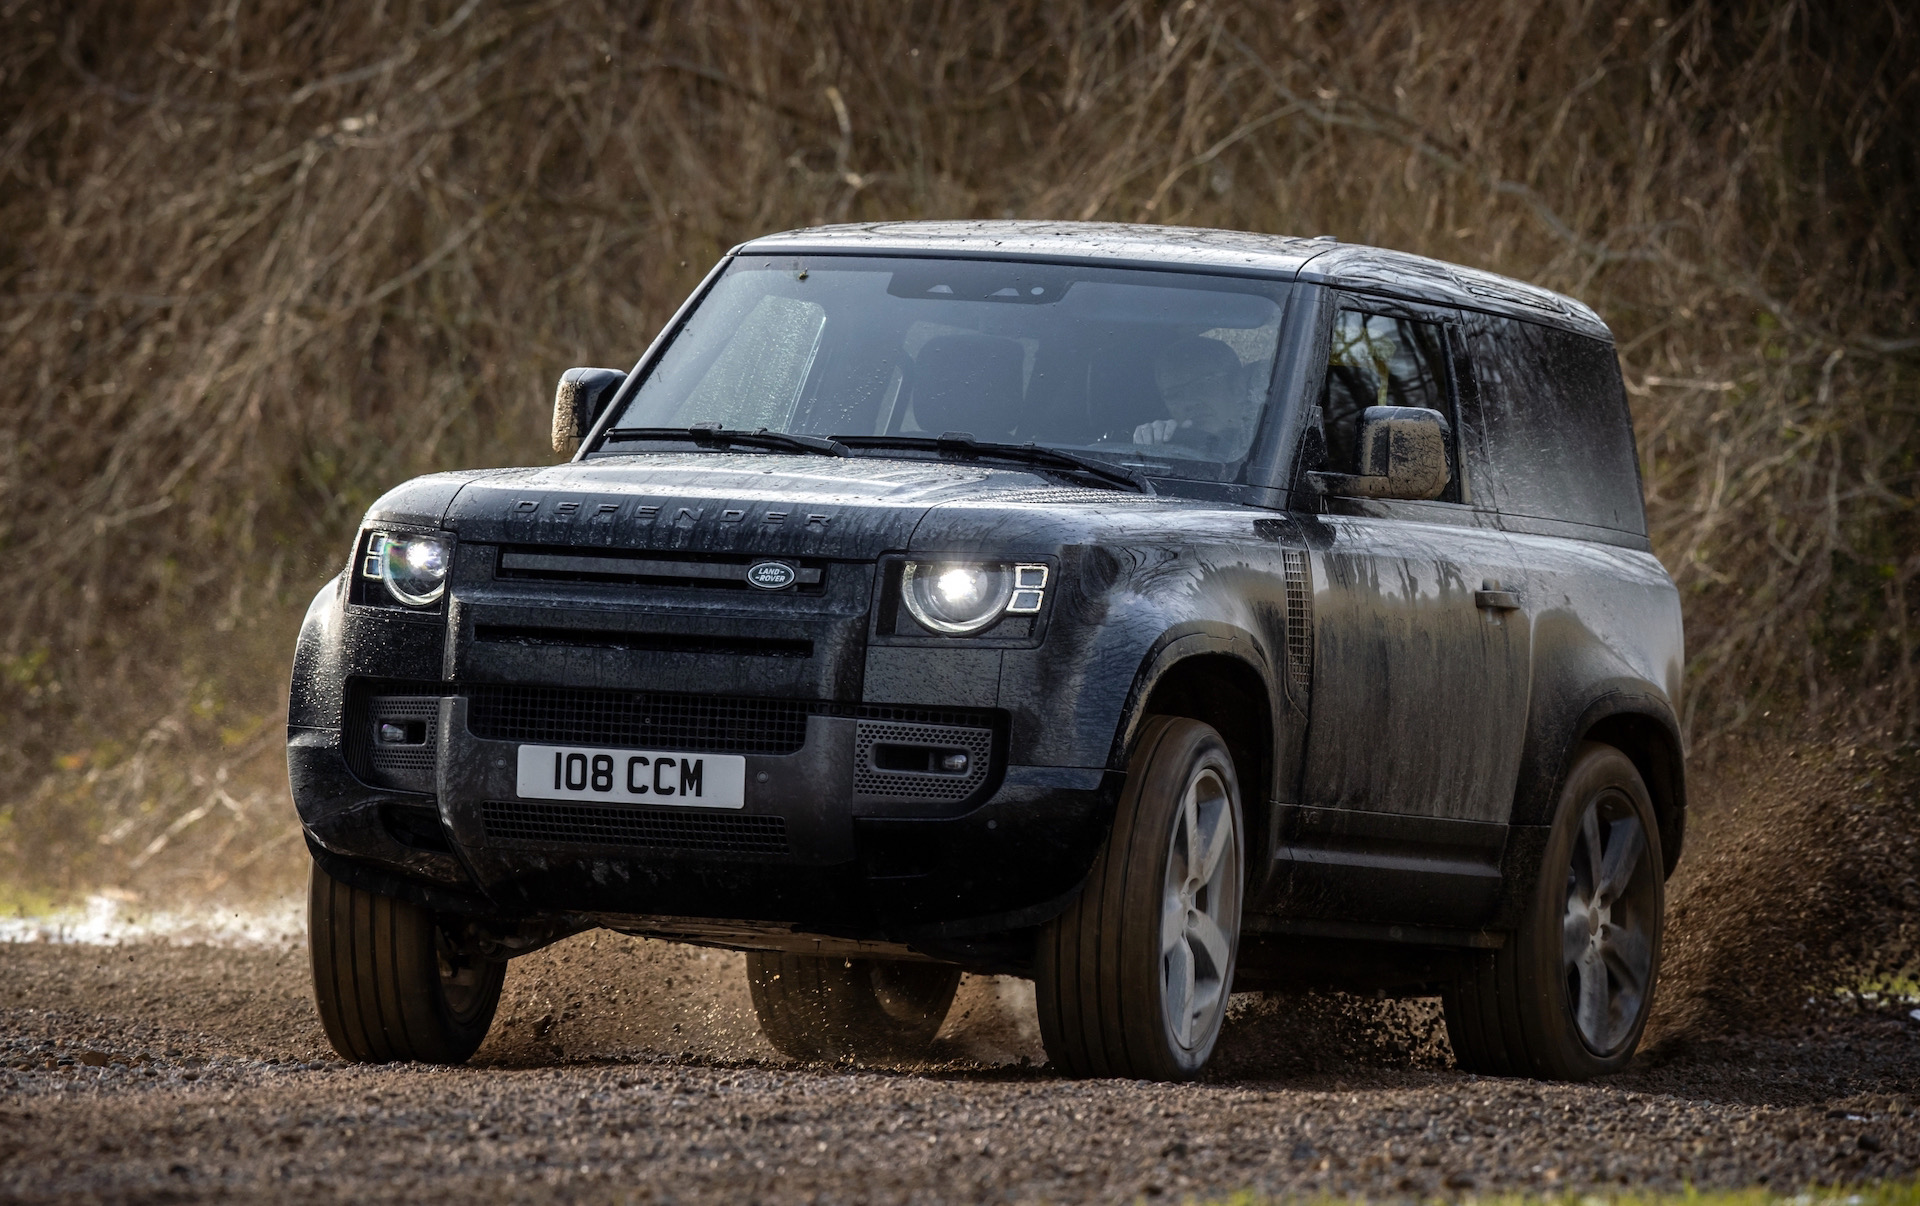 Land Rover Defender 'SVR' to feature BMW twin-turbo V8 – report